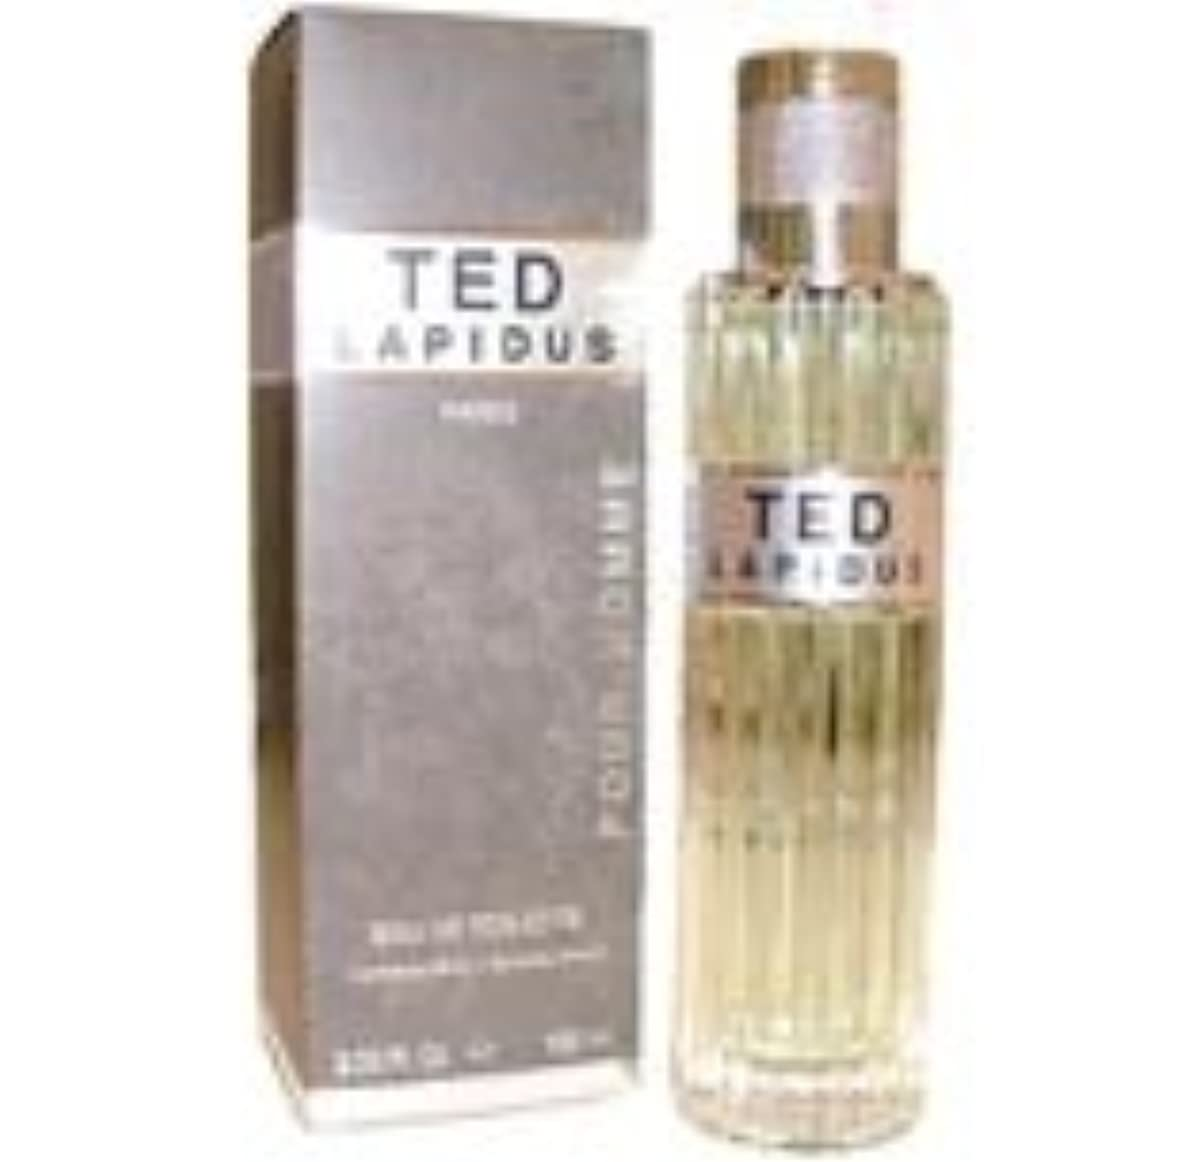 代表して未知のアレイTed (テッド) 1.7 oz (50ml) EDT Spray by Ted Rapidus for Men